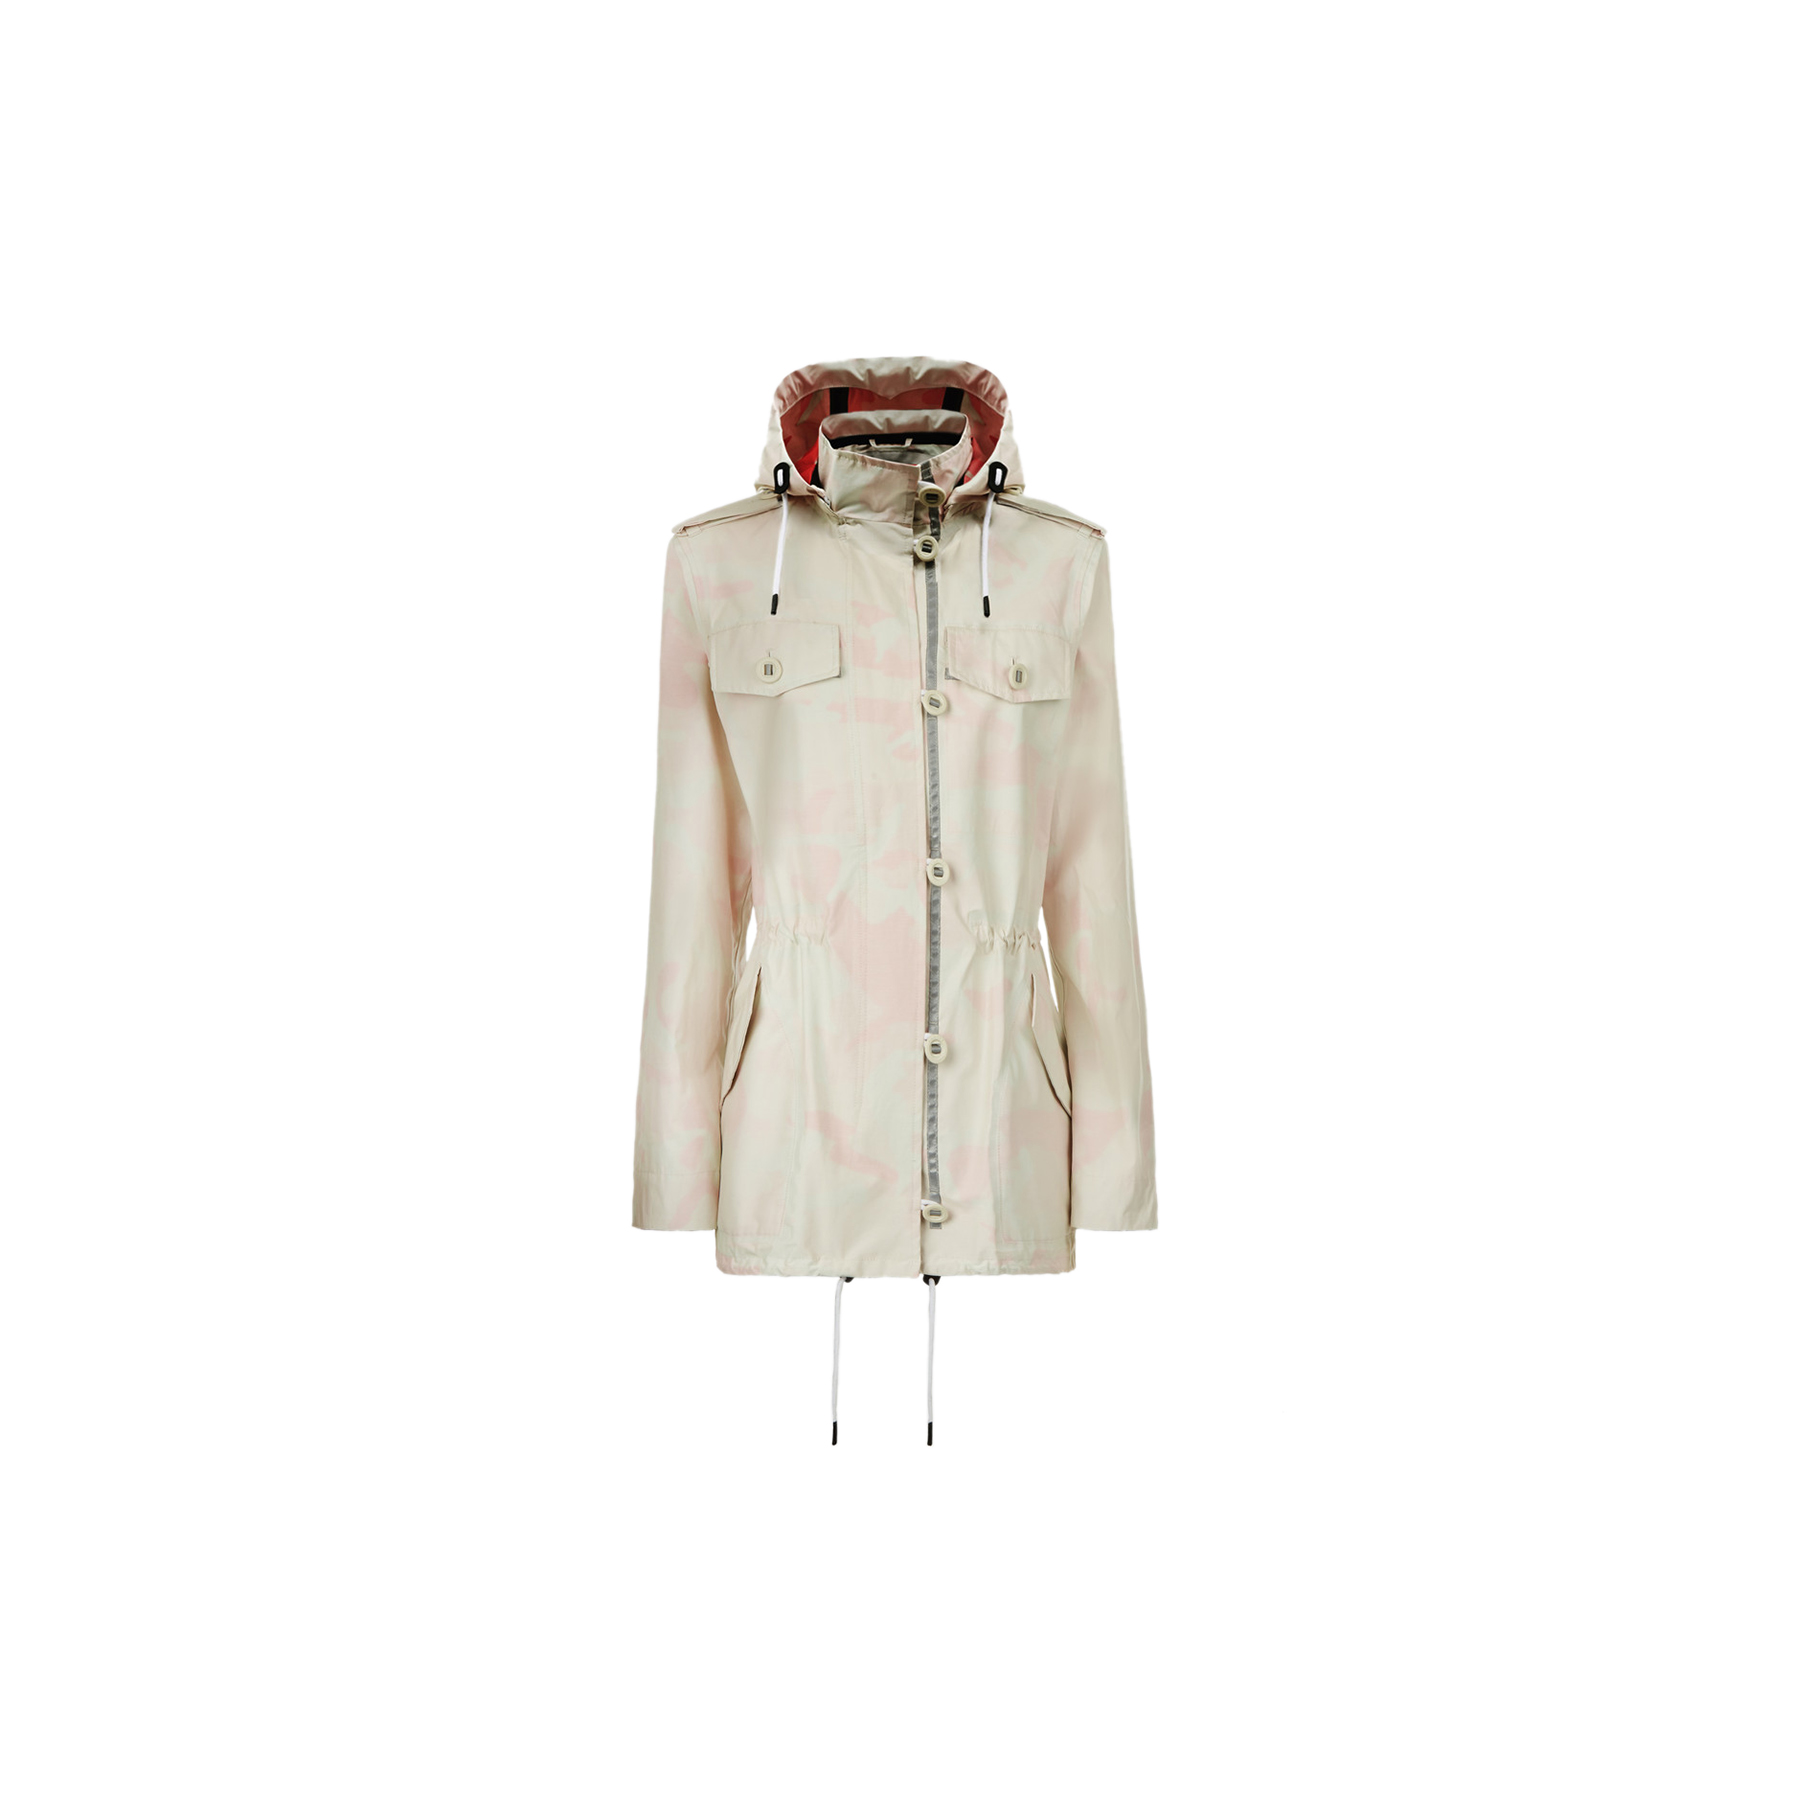 4c1f5d4a655 The Best Raincoats for Women | Real Simple